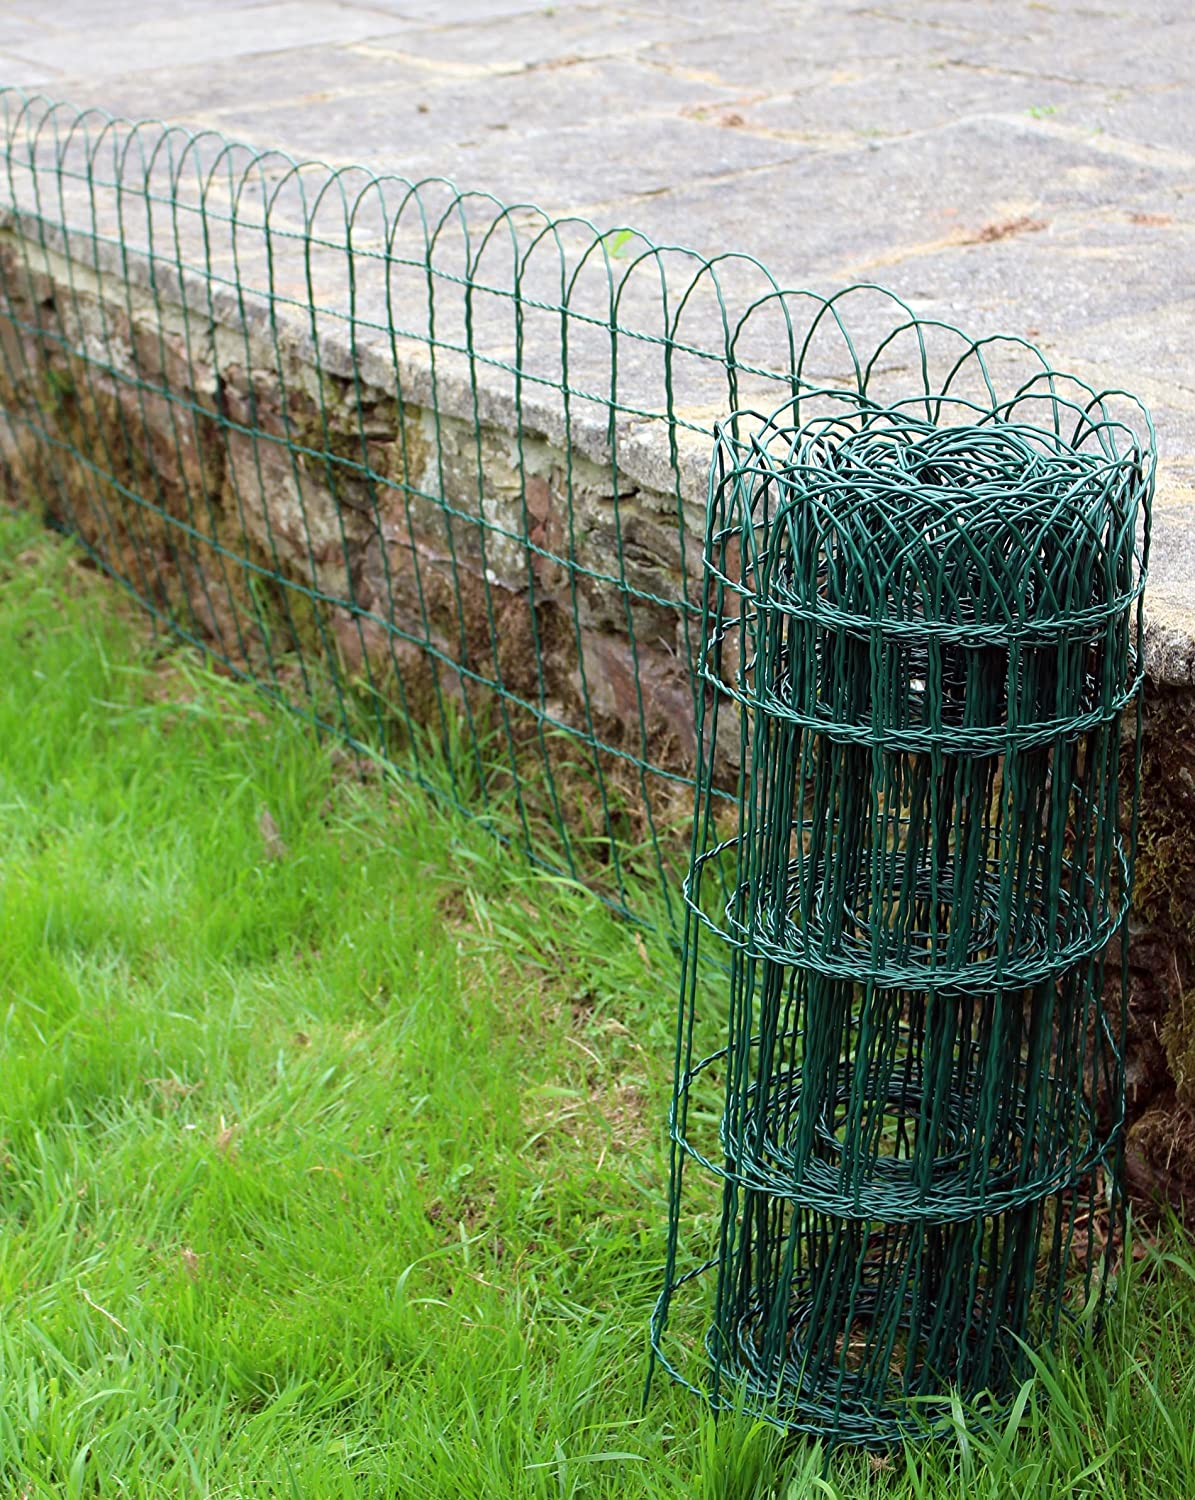 Garden Border Lawn Edging 10m X 400mm Or 650mm PVC Coated Green Wire Fencing  (1, 650mm Height 513): Amazon.co.uk: Garden U0026 Outdoors